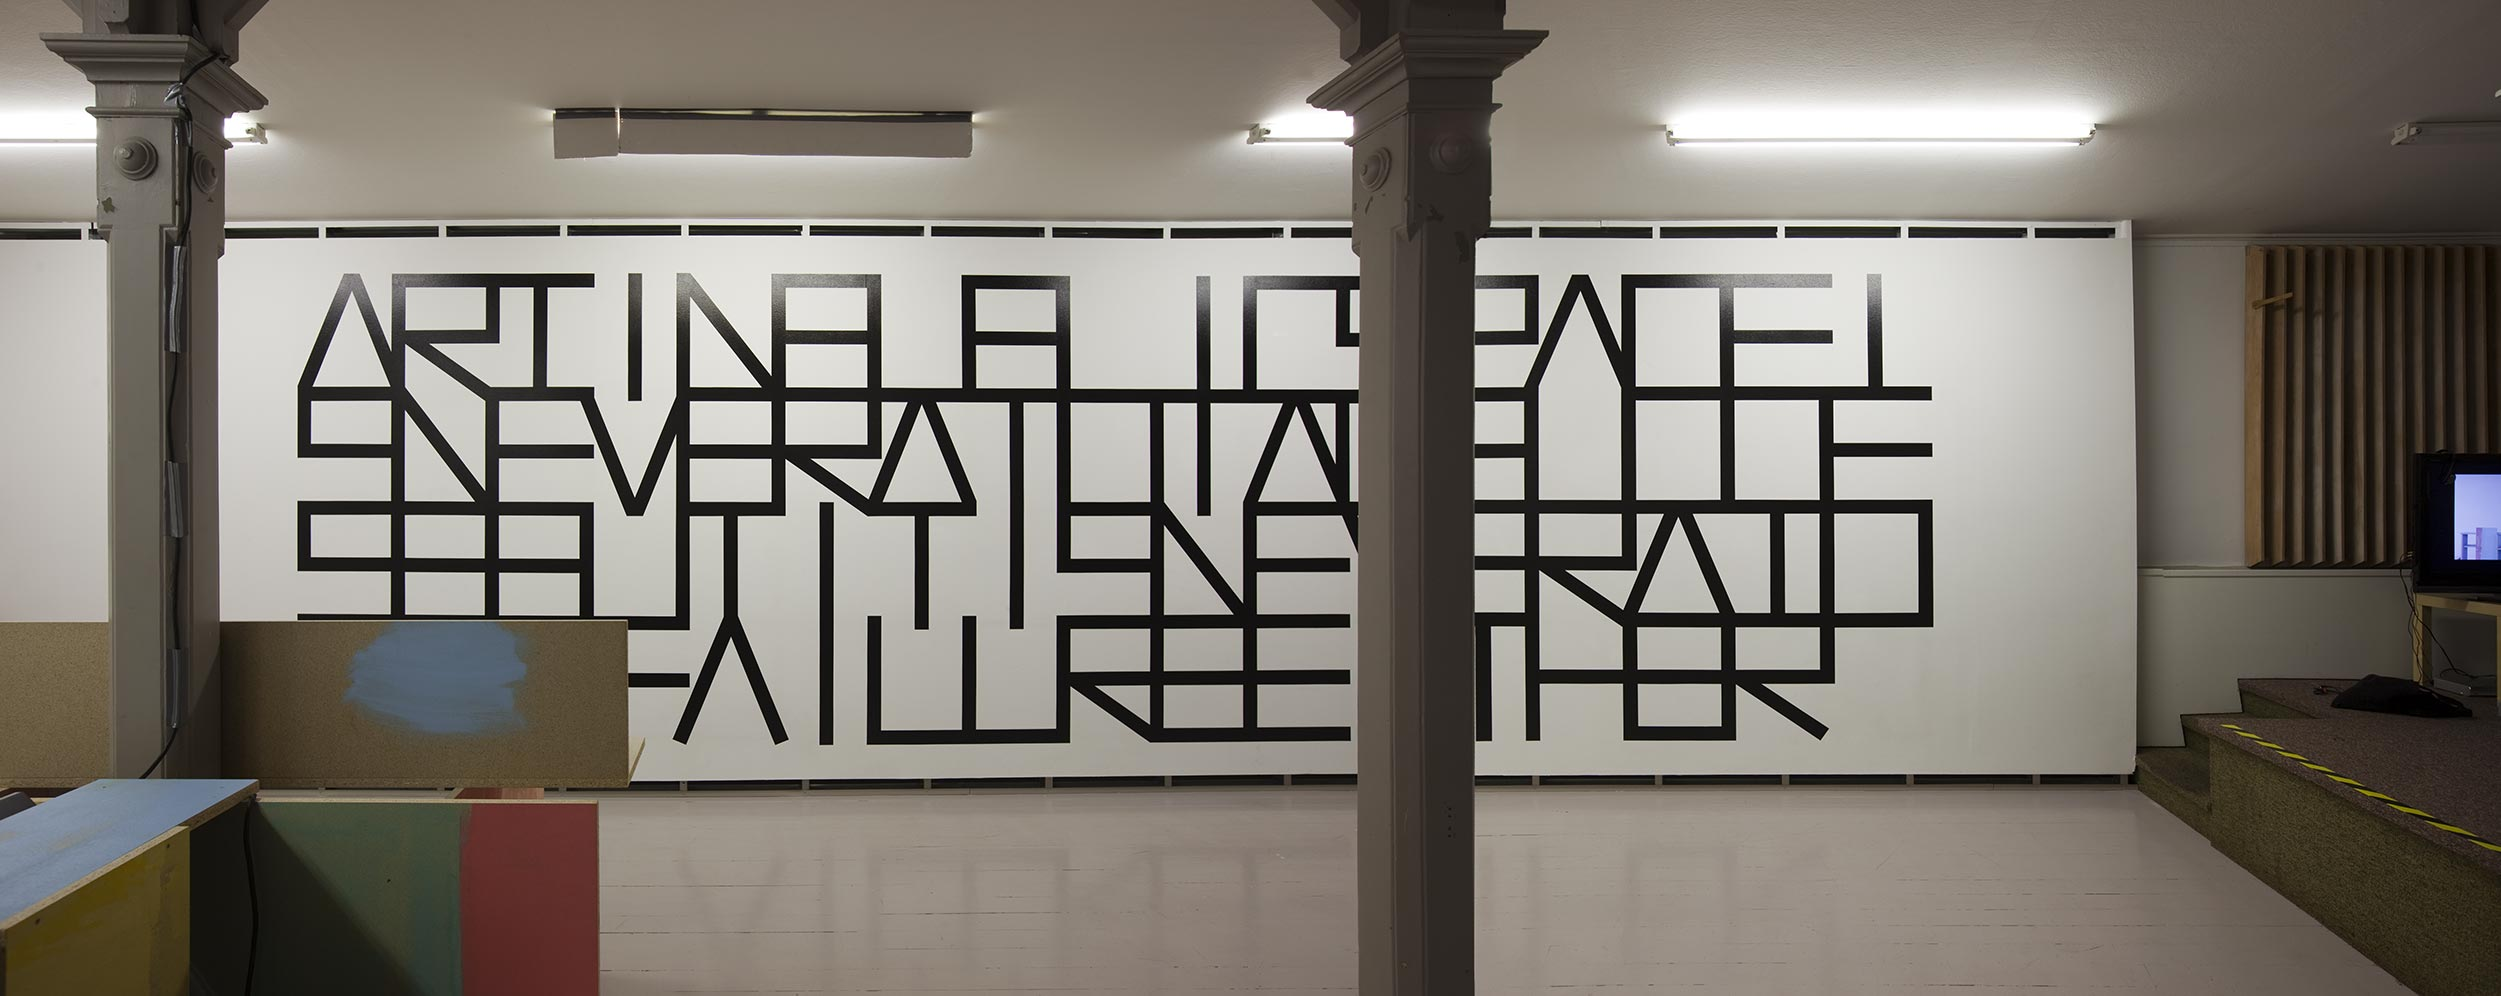 Thomas Elovsson, Art in Public Space is Never a Total Success but it is Never a Total Failure Either, 2009. Foto: Jean-Baptiste Béranger